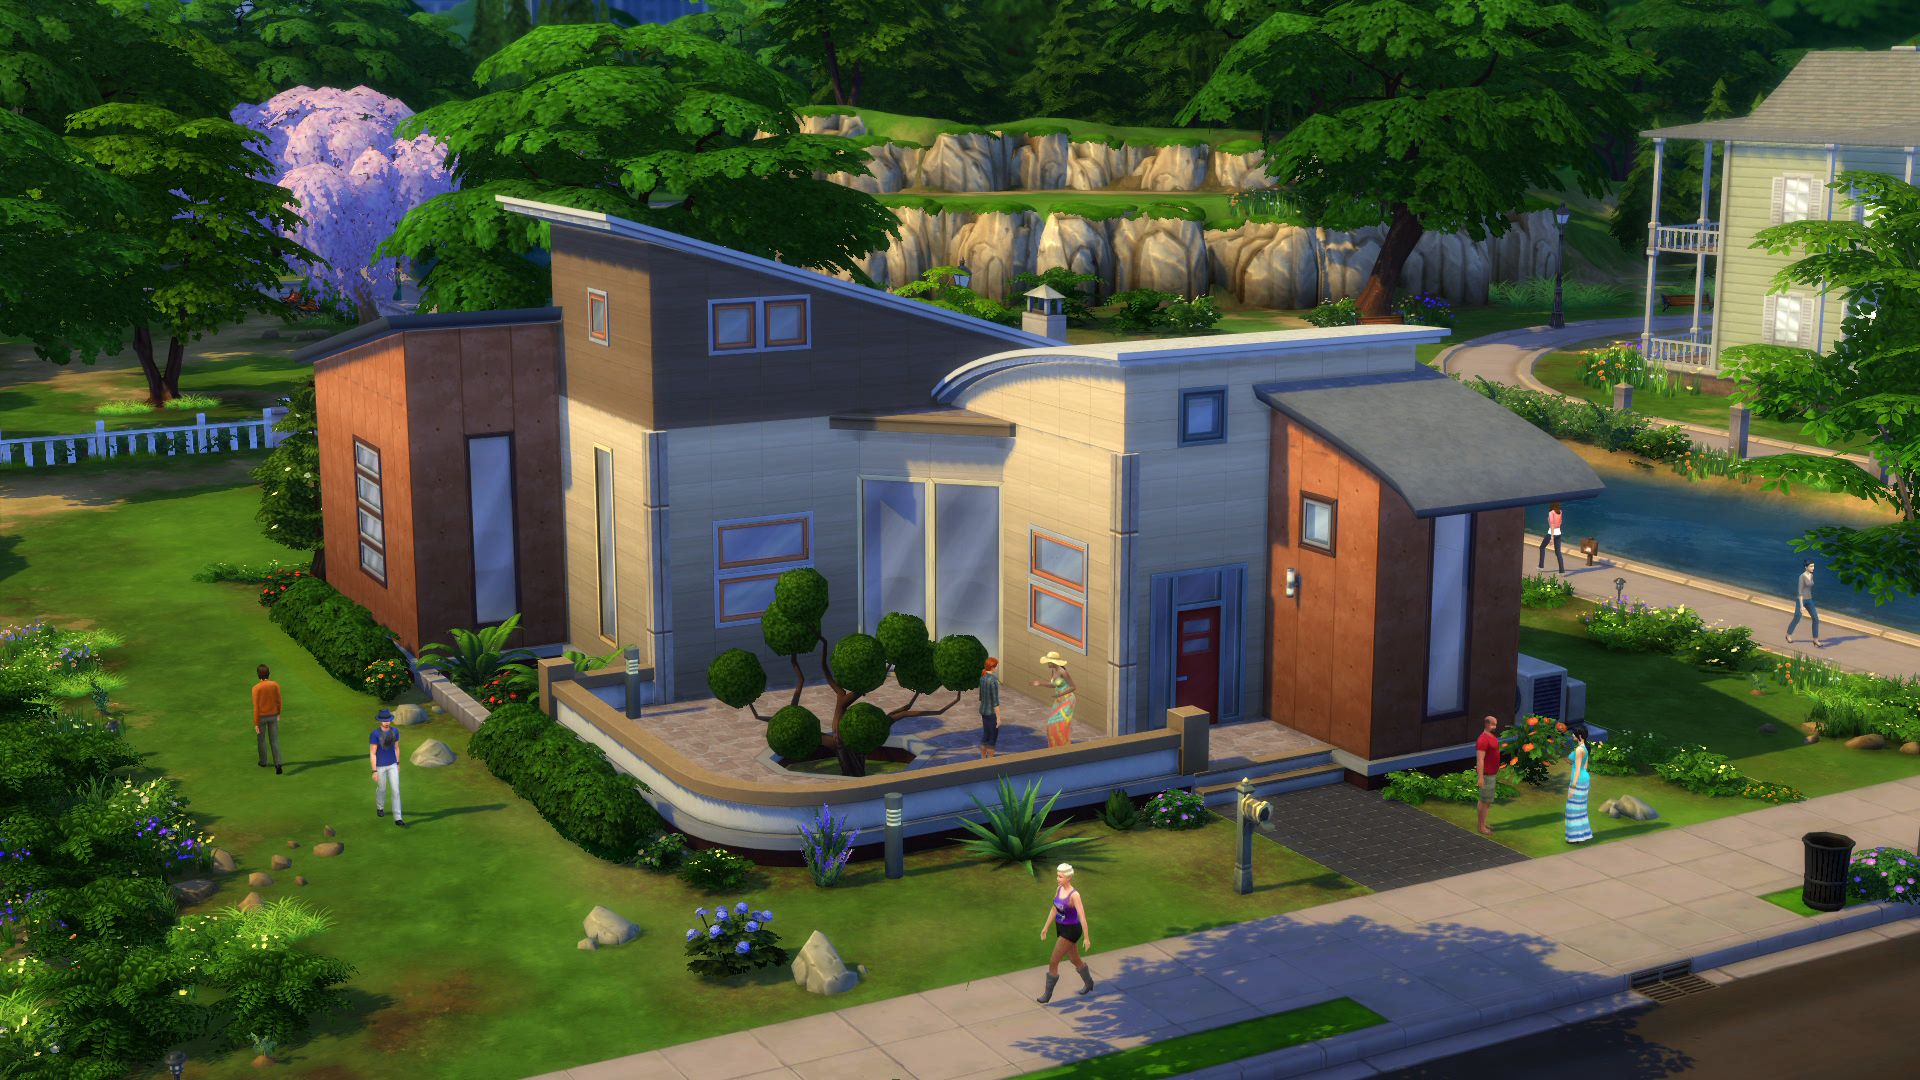 The sims 4 review toying with emotions shacknews Custom build a house online